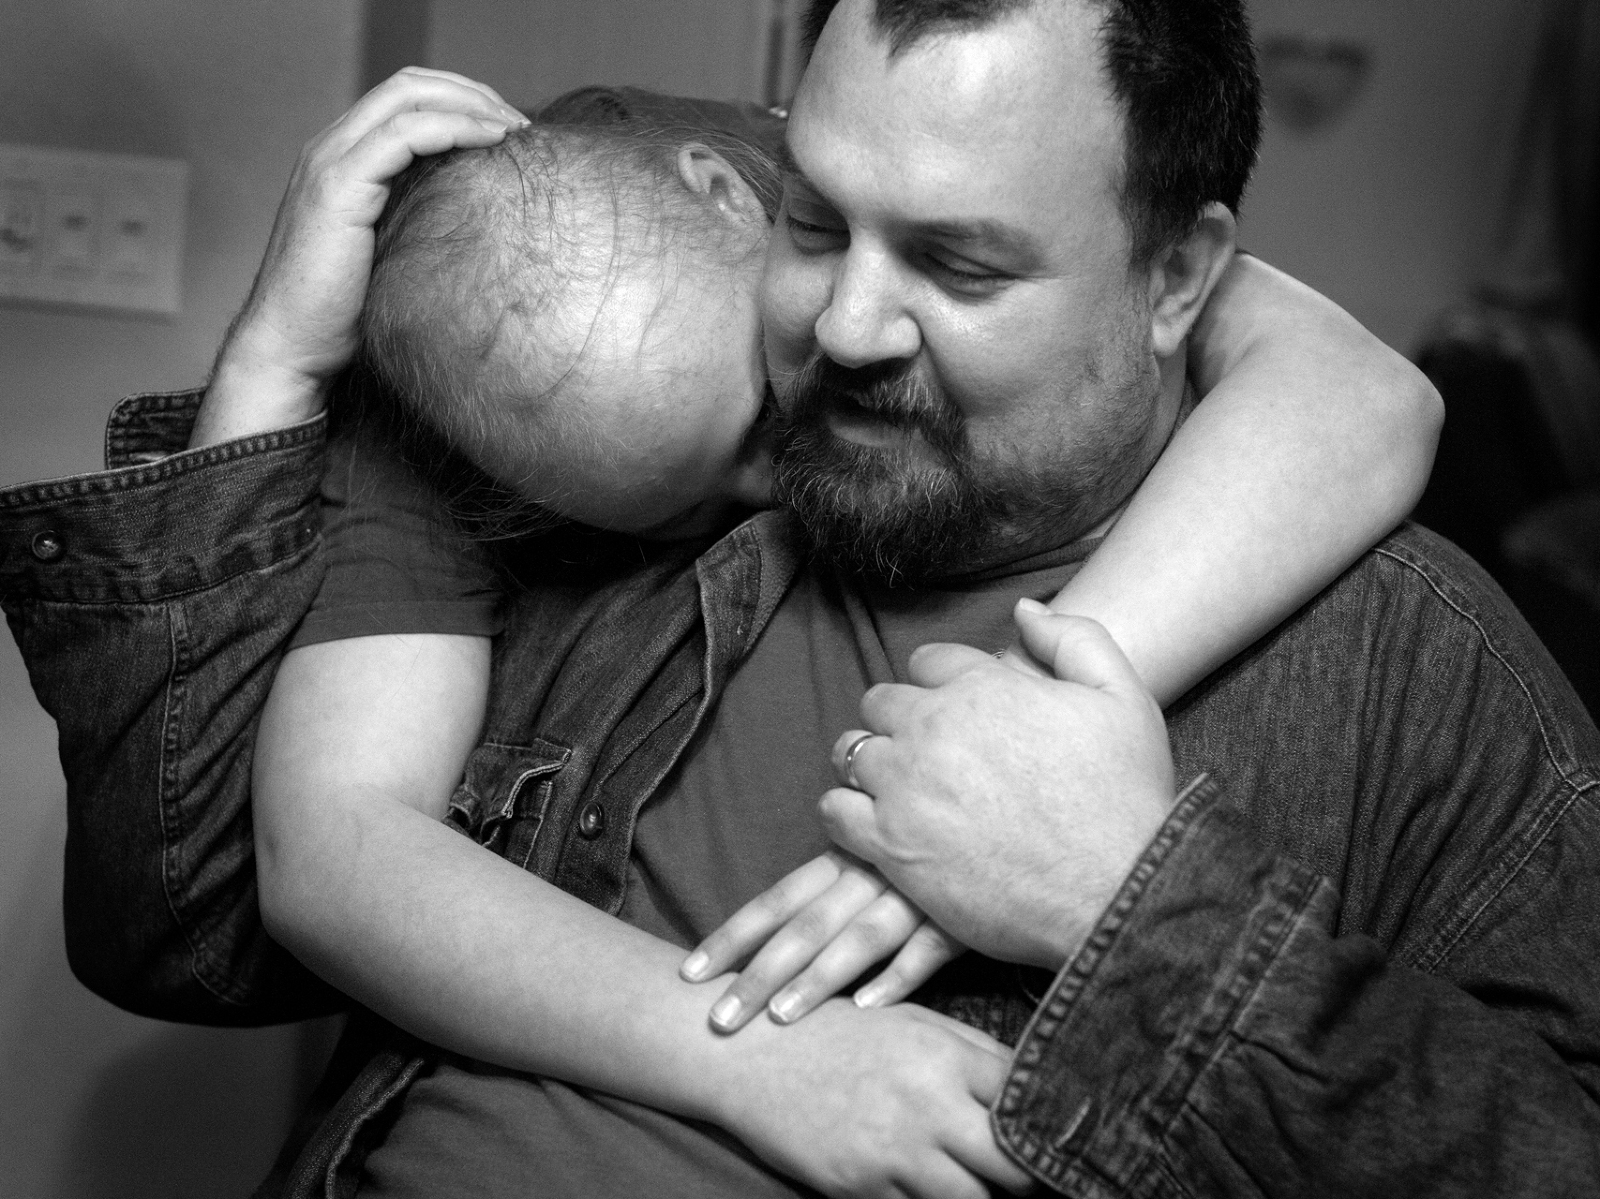 Allie DeBake, 13, and her dad, Scott DeBake, embrace in Scott's mother's home in Jackson County, Mich. on Tuesday, November 13, 2012.